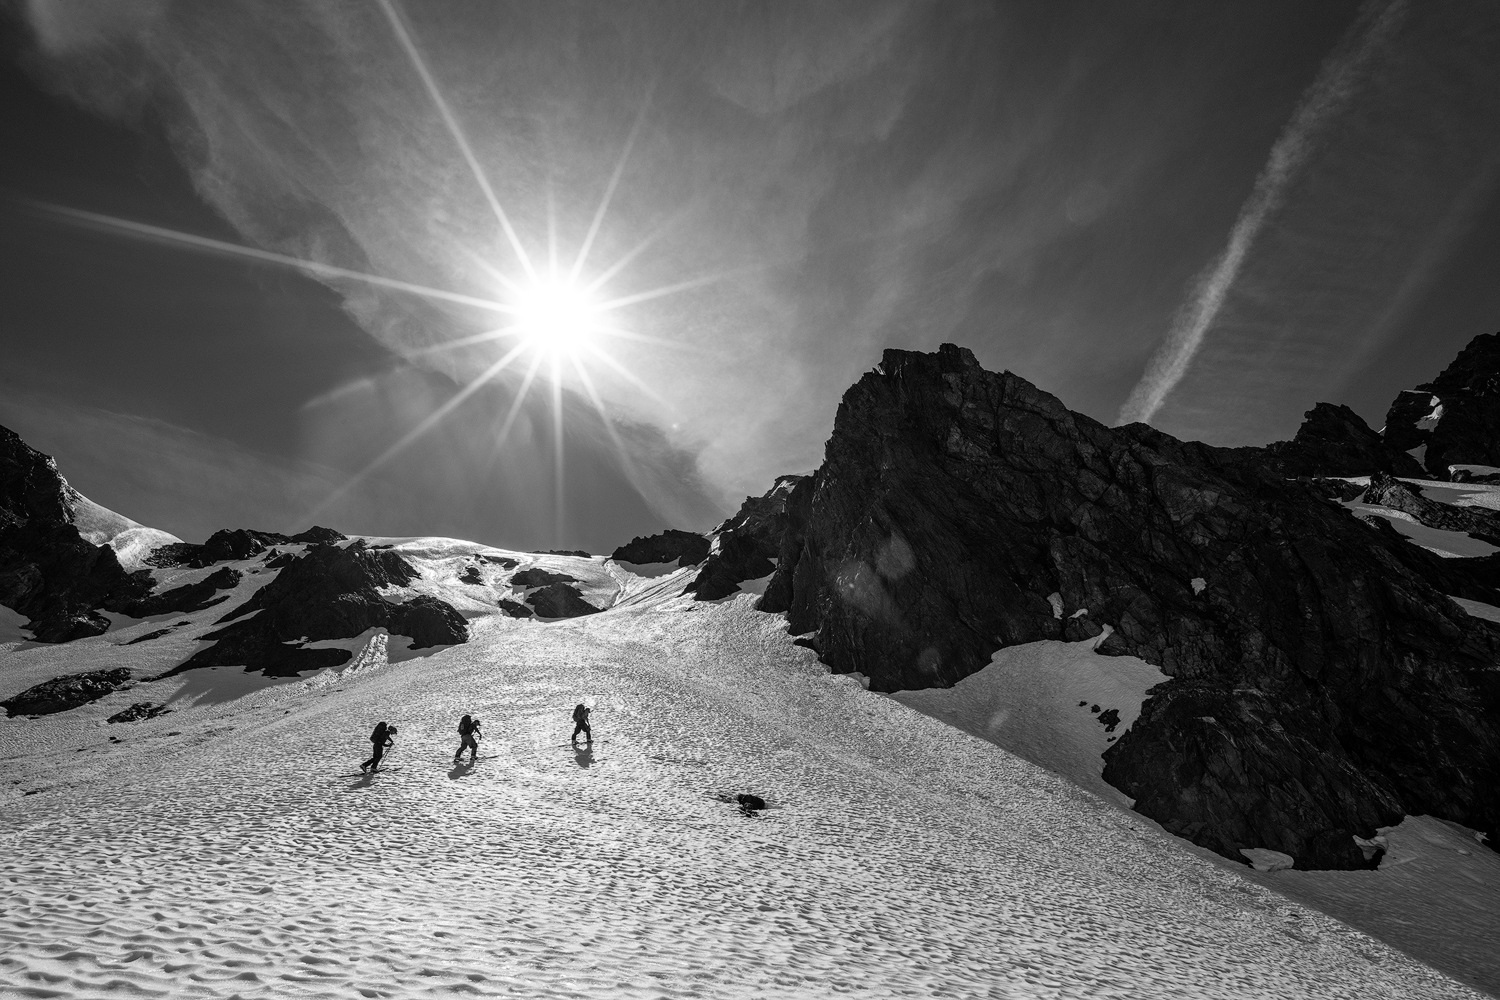 Several backcountry skiers skin across a glacier in Washington's Olympic Peninsula